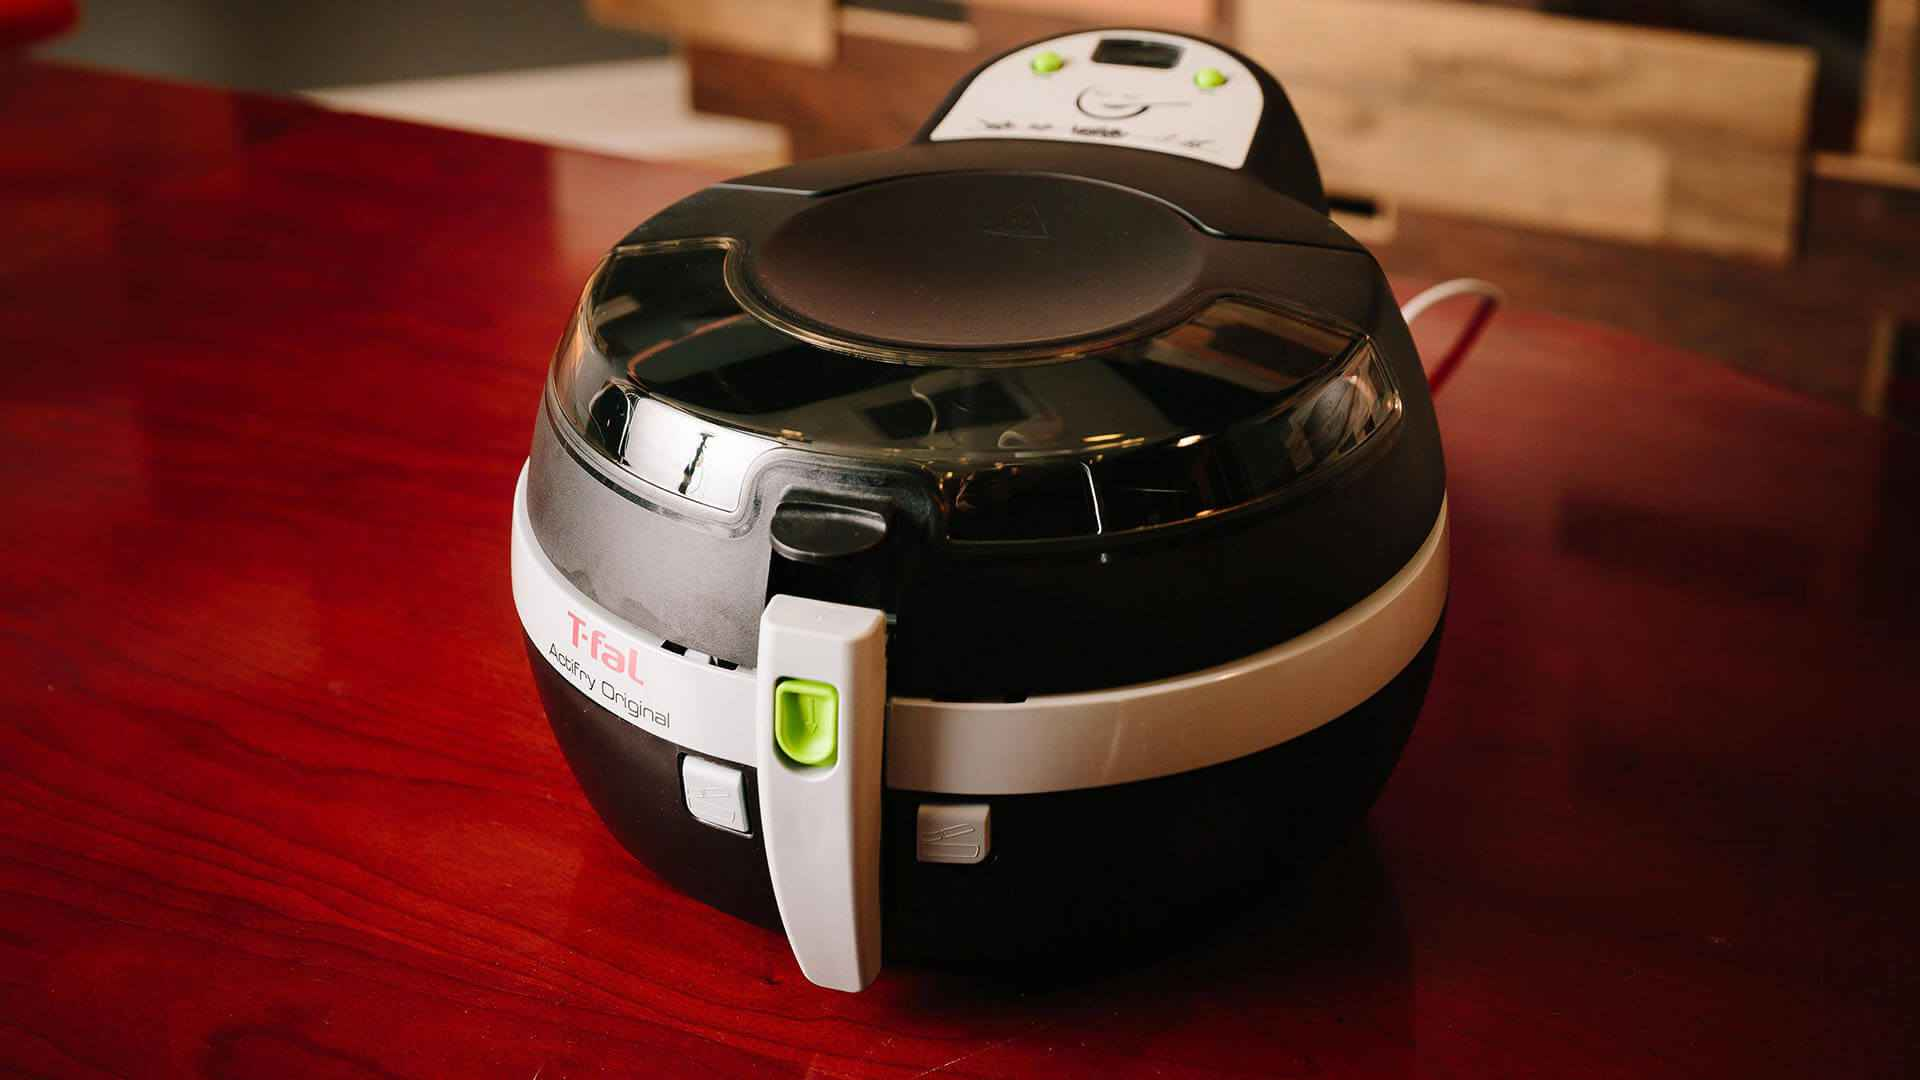 tfal-air-fryer